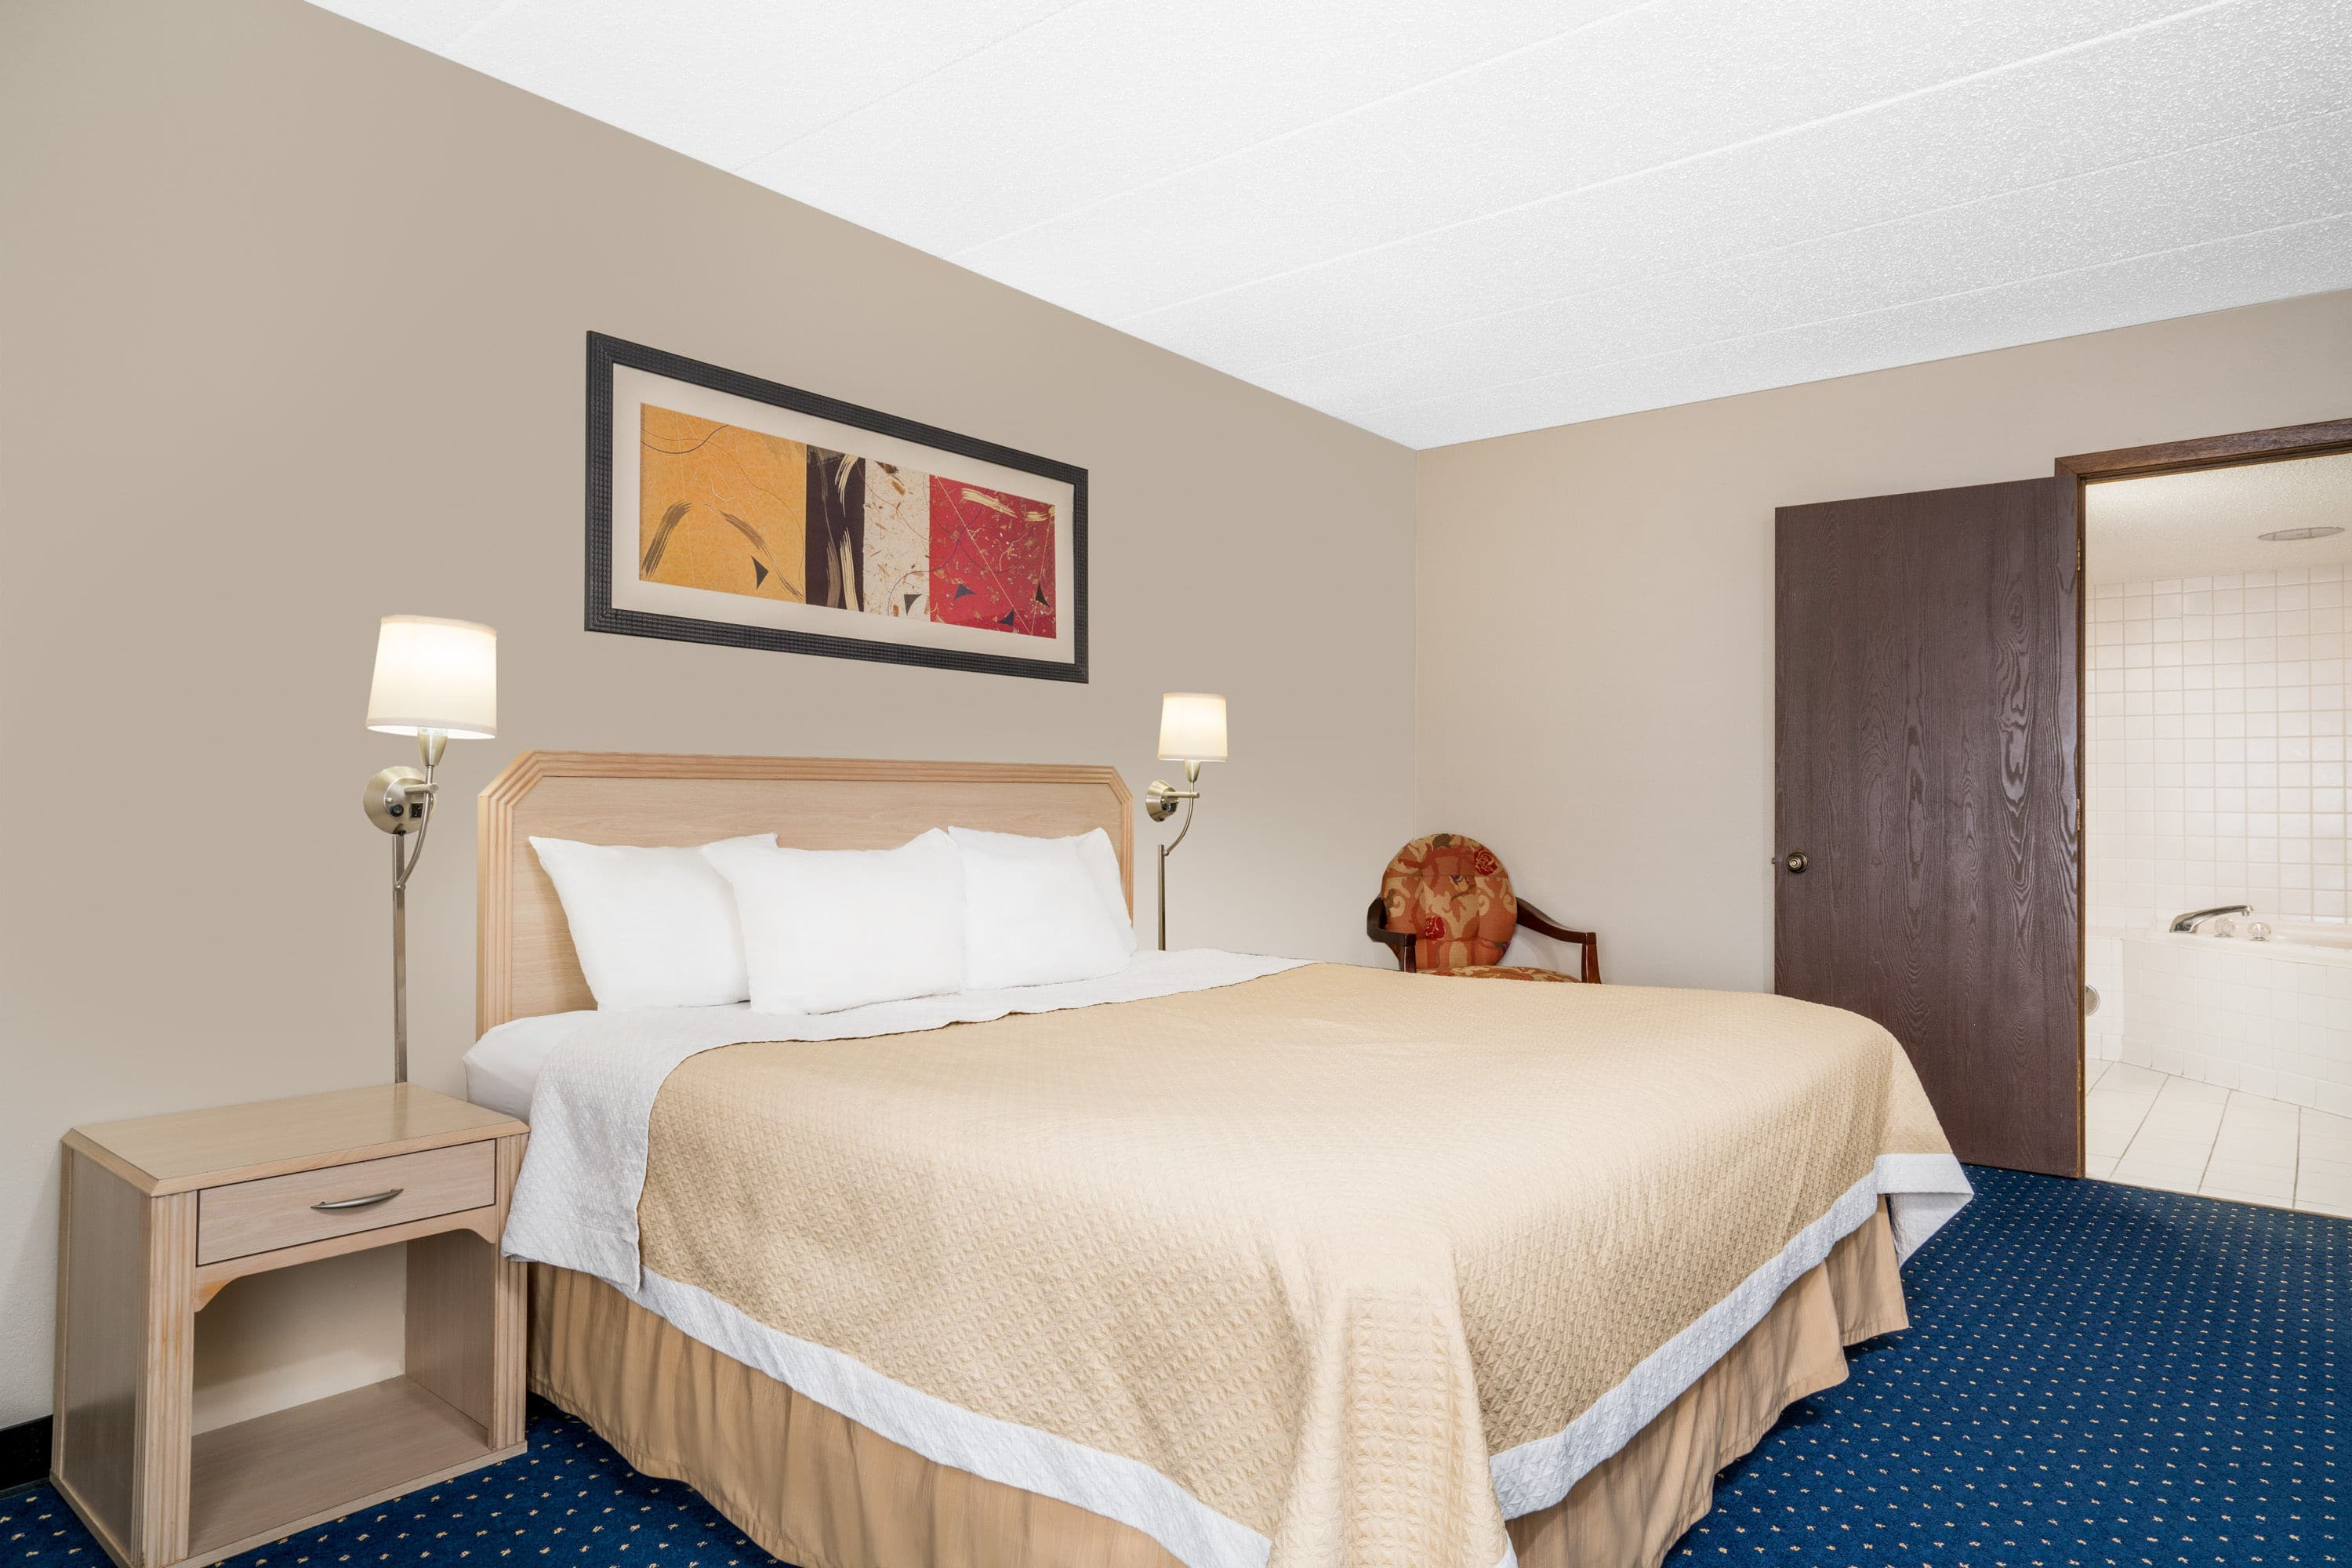 Guest room at the Days Inn La Crosse Conference Center in La Crosse, Wisconsin